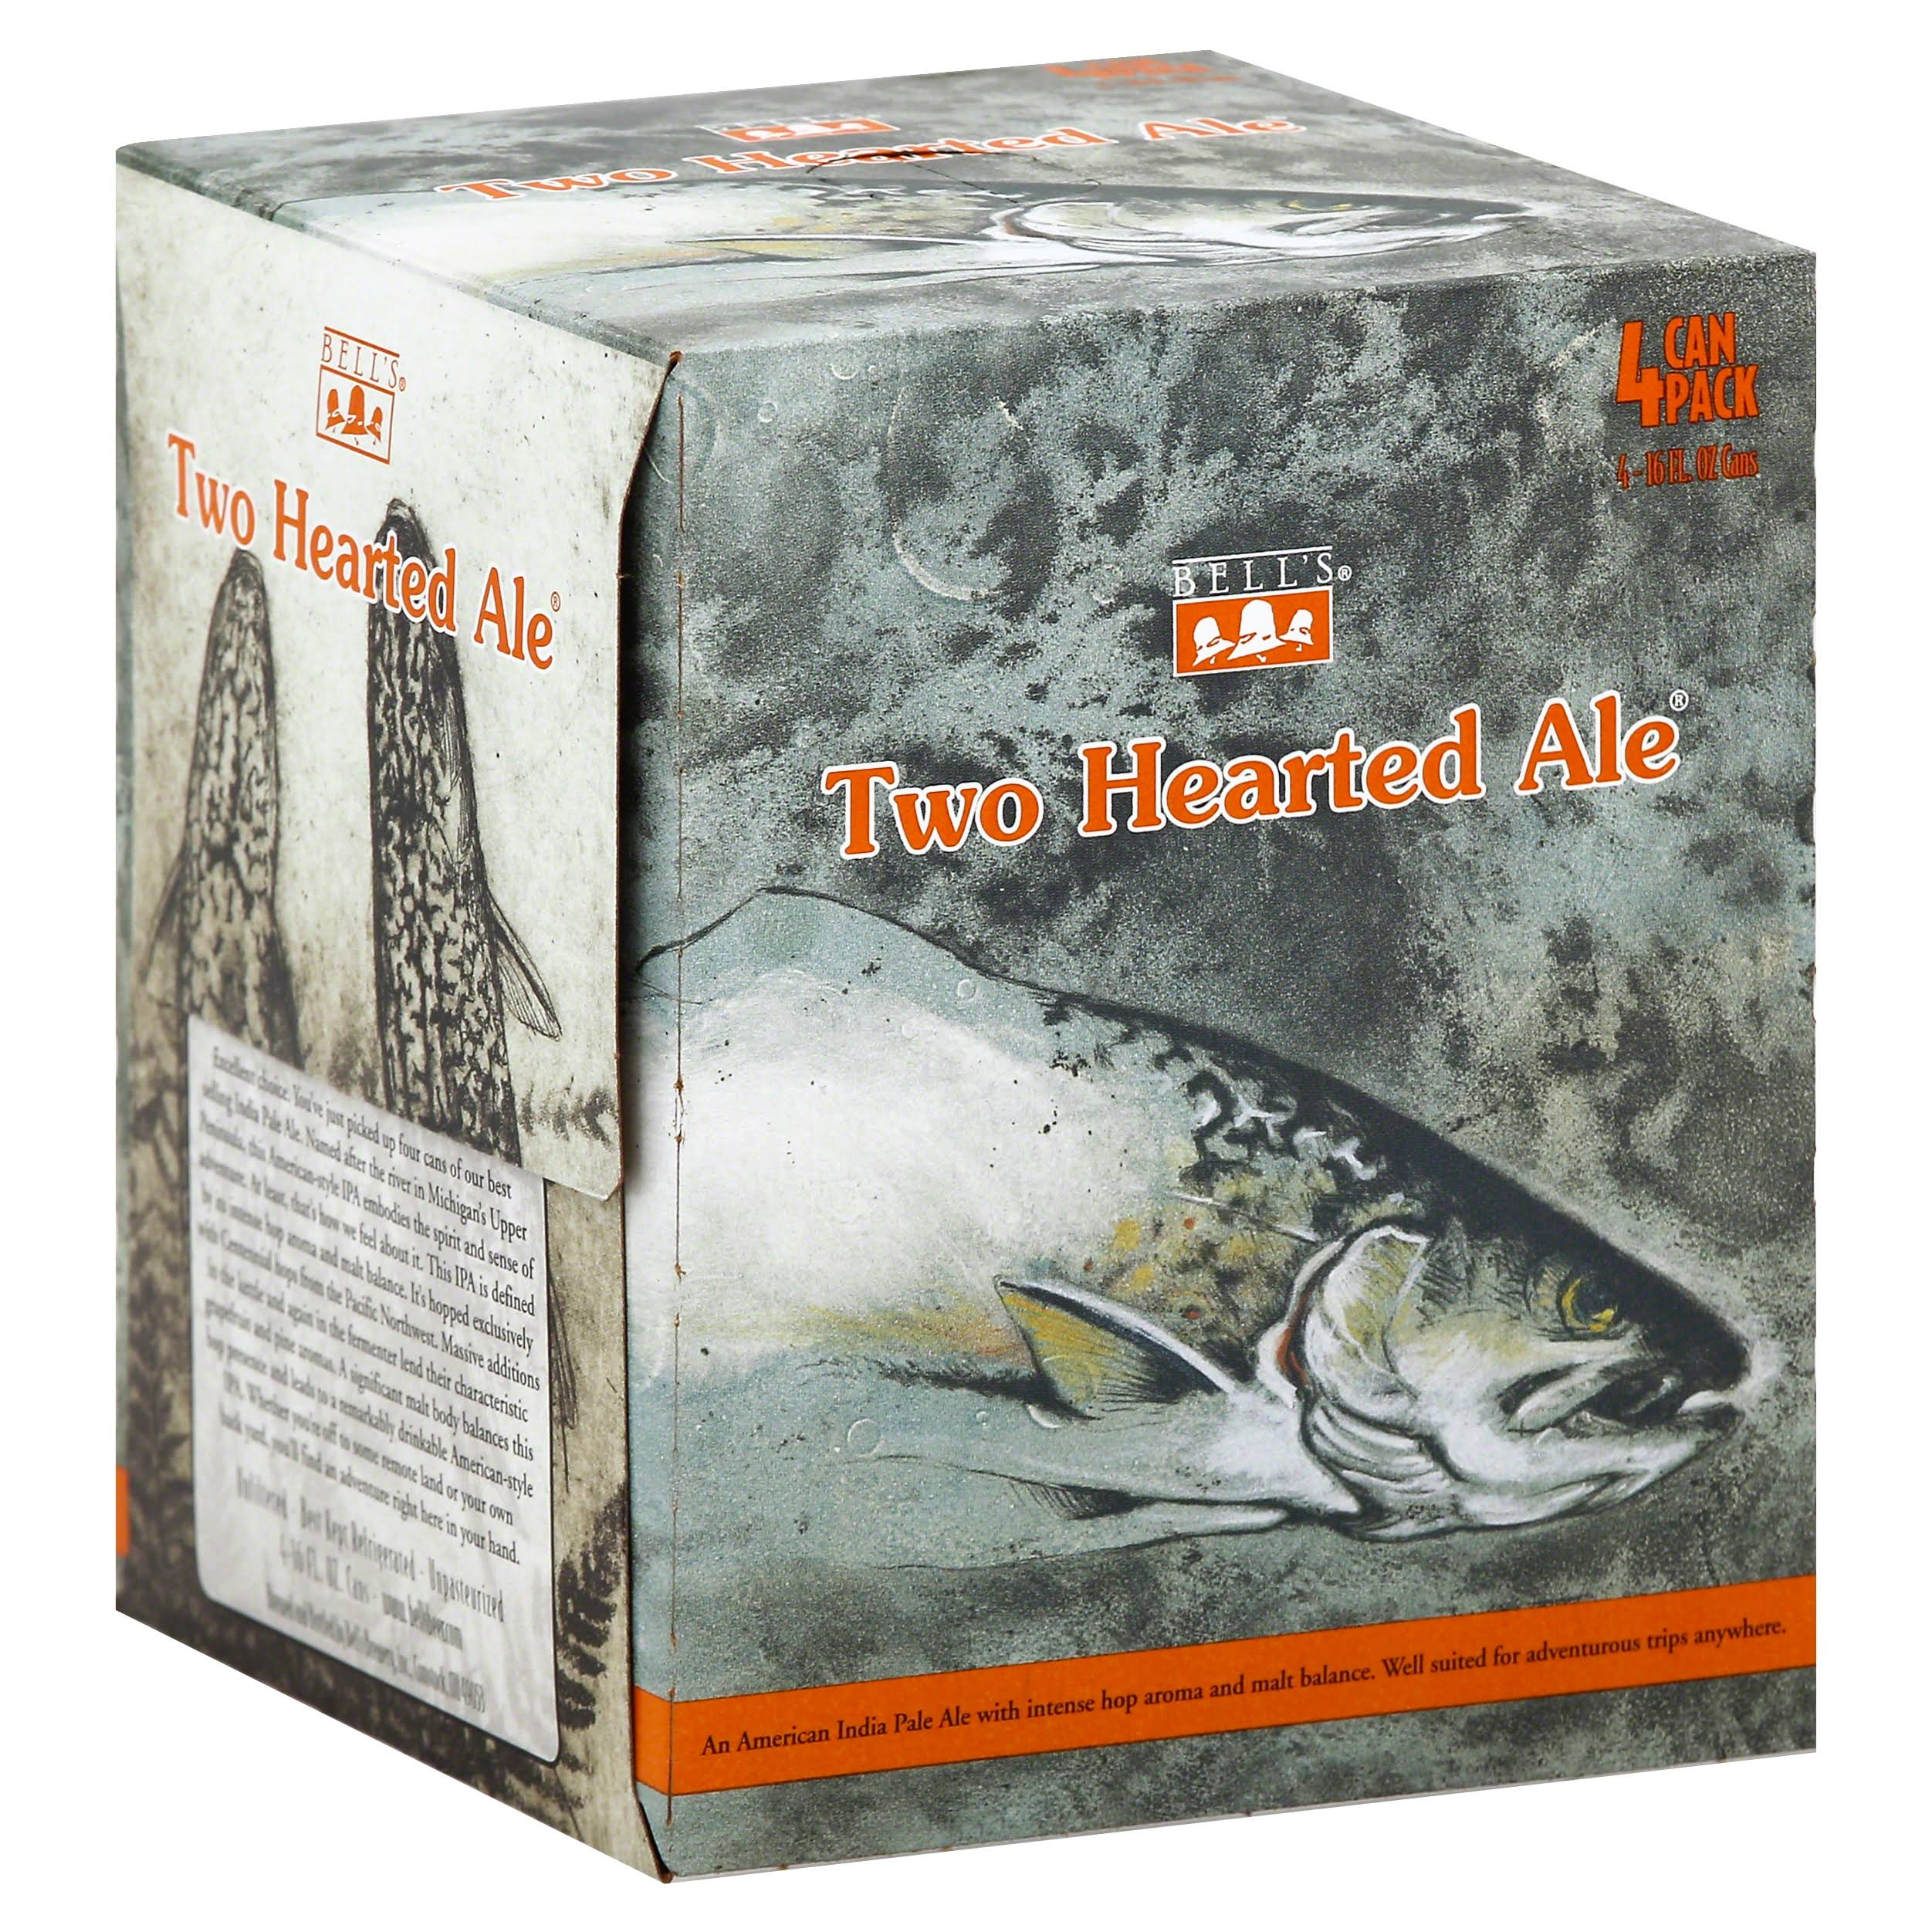 Bell's Two Hearted Ale - 4 pack, 16 fl oz cans